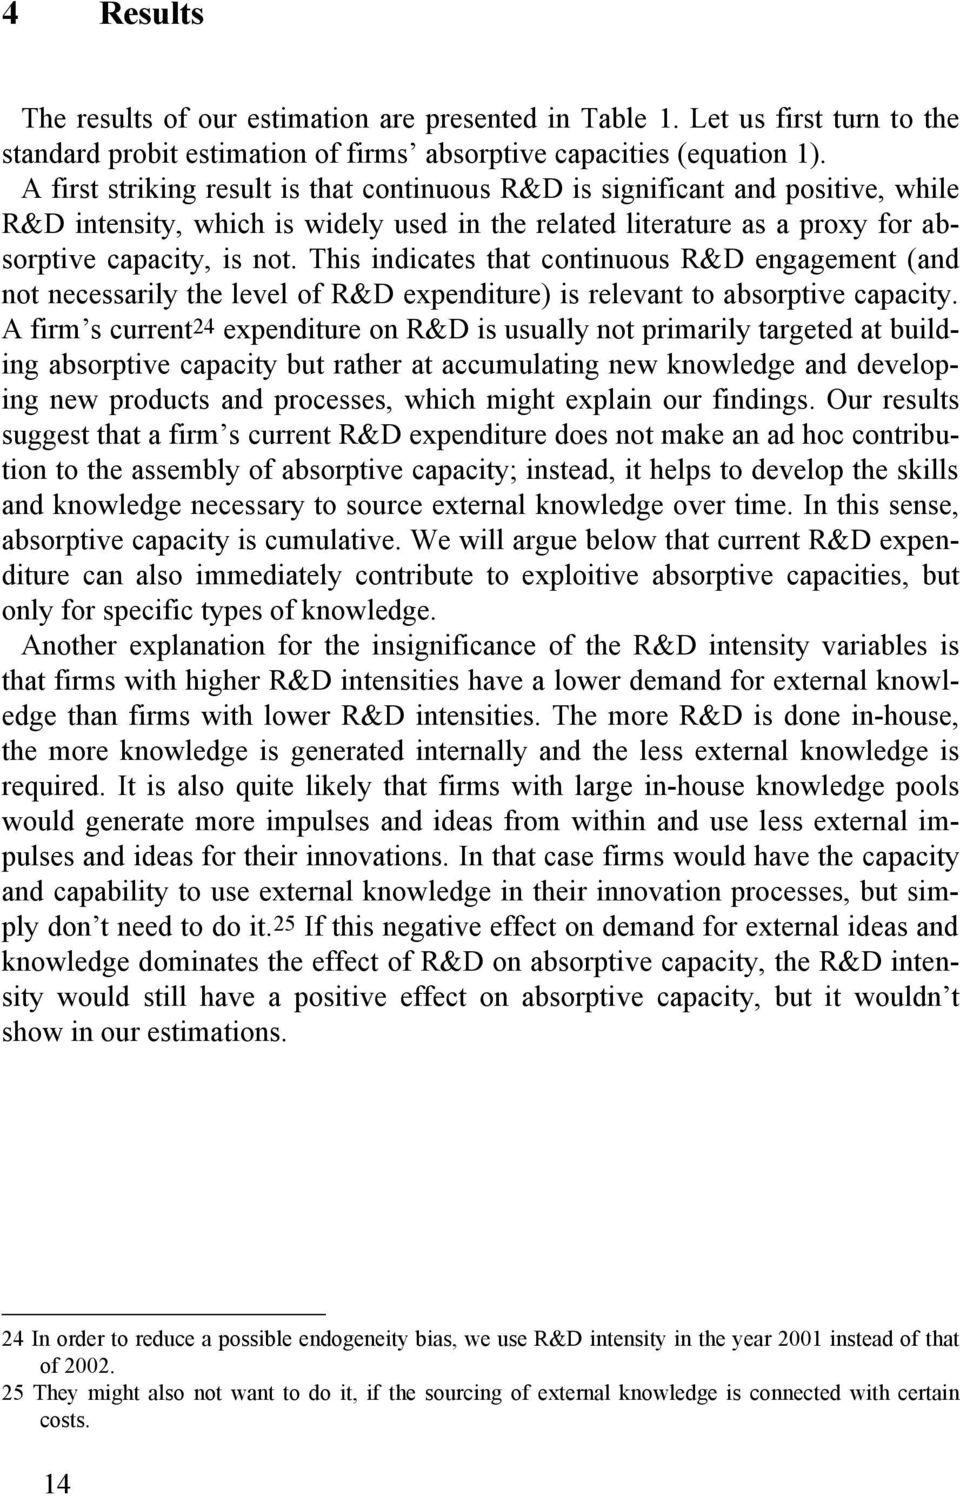 This indicates that continuous R&D engagement (and not necessarily the level of R&D expenditure) is relevant to absorptive capacity.